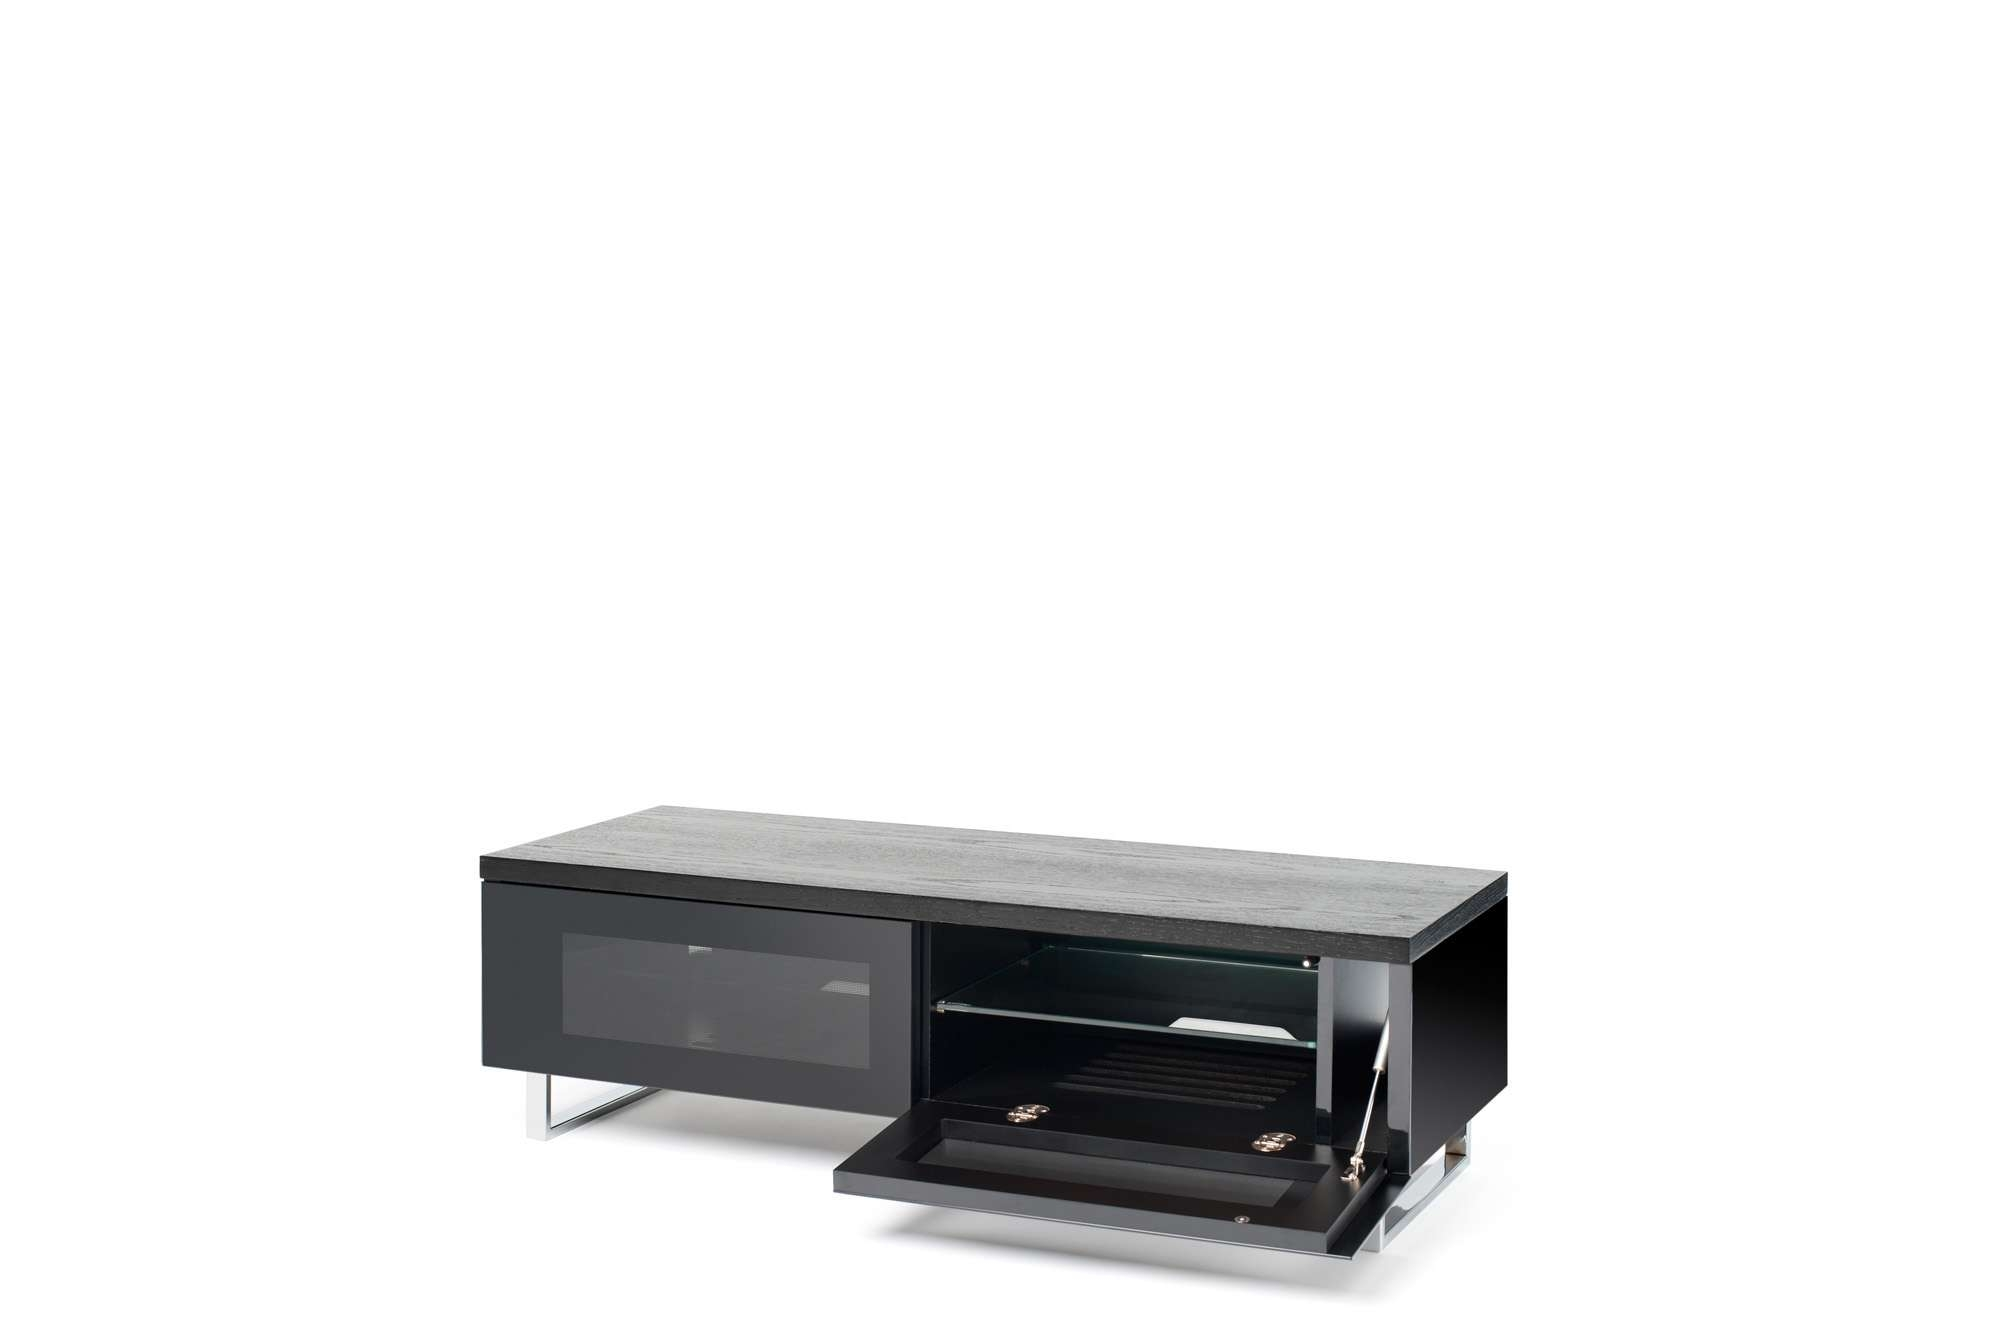 Techlink Pm160B 'panorama' 160Cm Tv Stand Black | Hbh Woolacotts Inside Panorama Tv Stands (View 14 of 20)